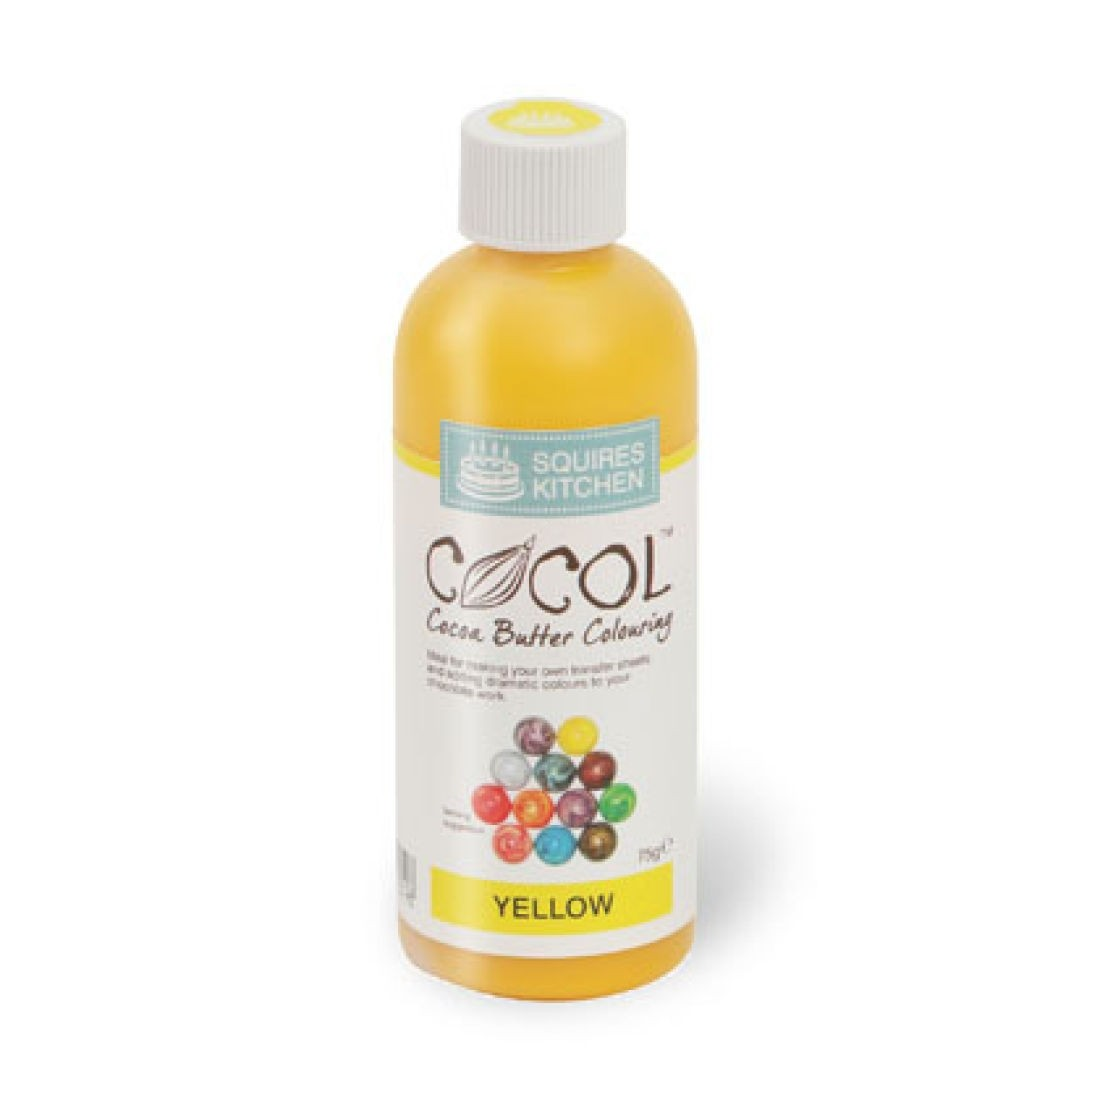 SK Professional COCOL Chocolate Colouring 75g Yellow